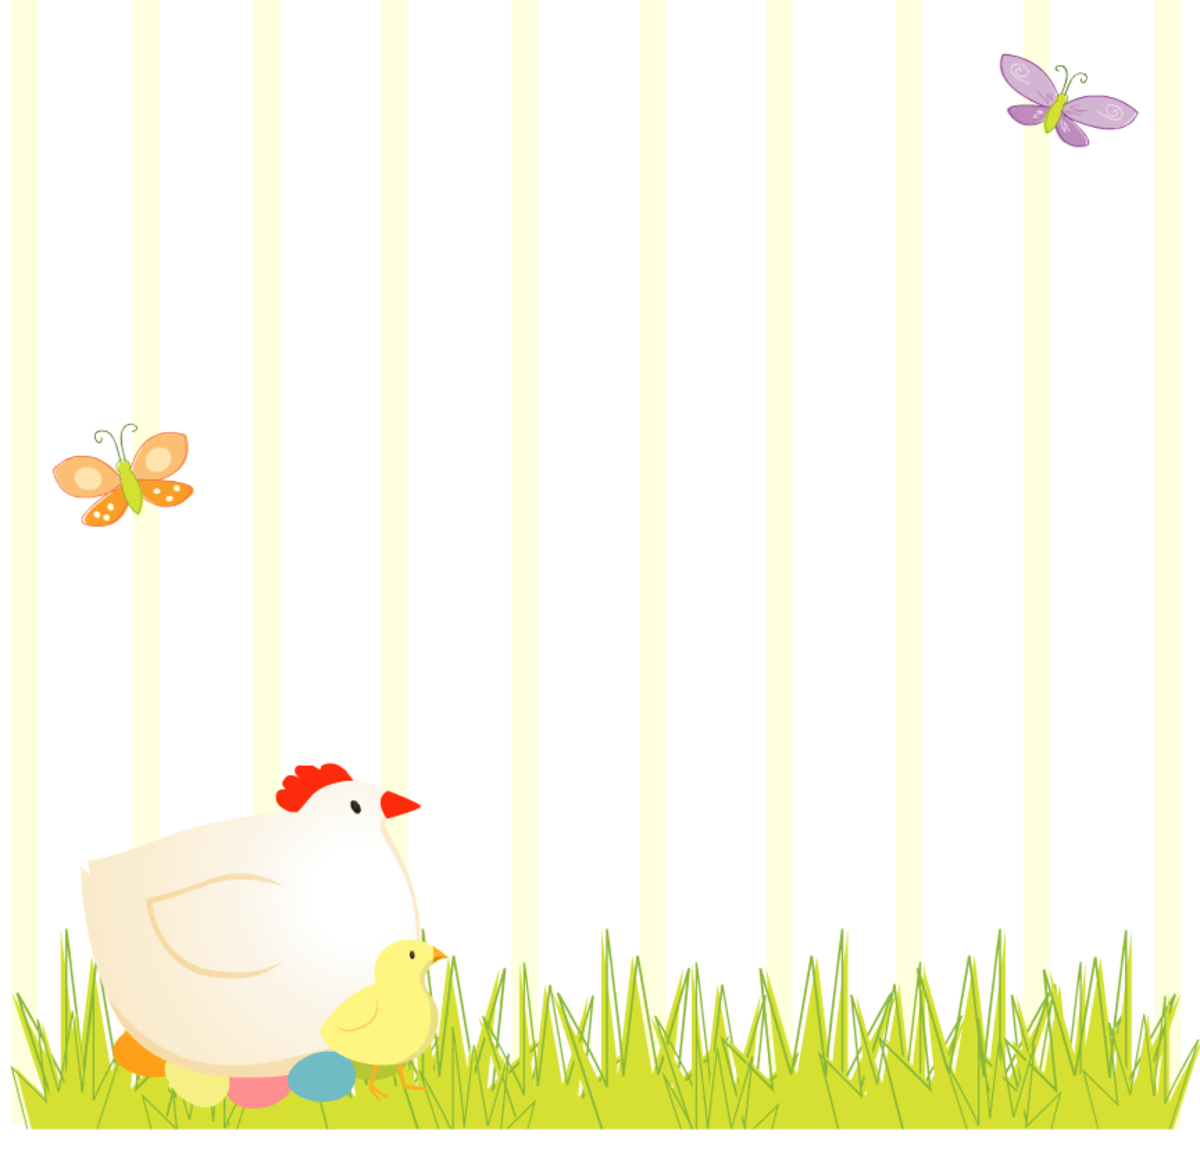 Easter scrapbook layout: Mother chicken and baby chick in the grass